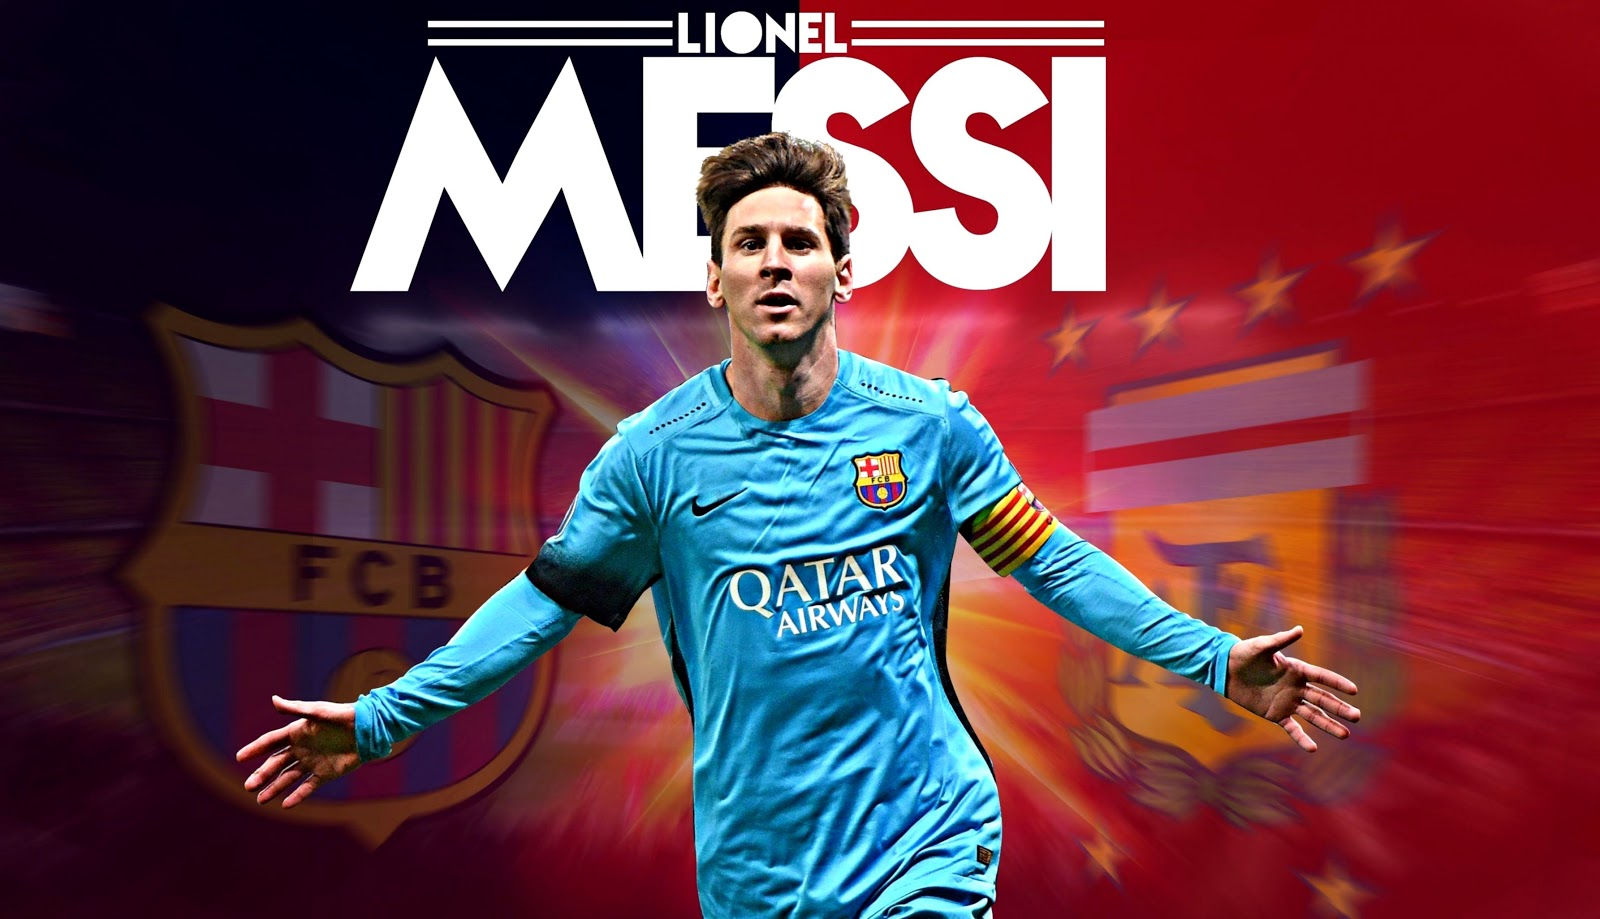 New Jersey Wallpaper Messi Wallpaper 2020